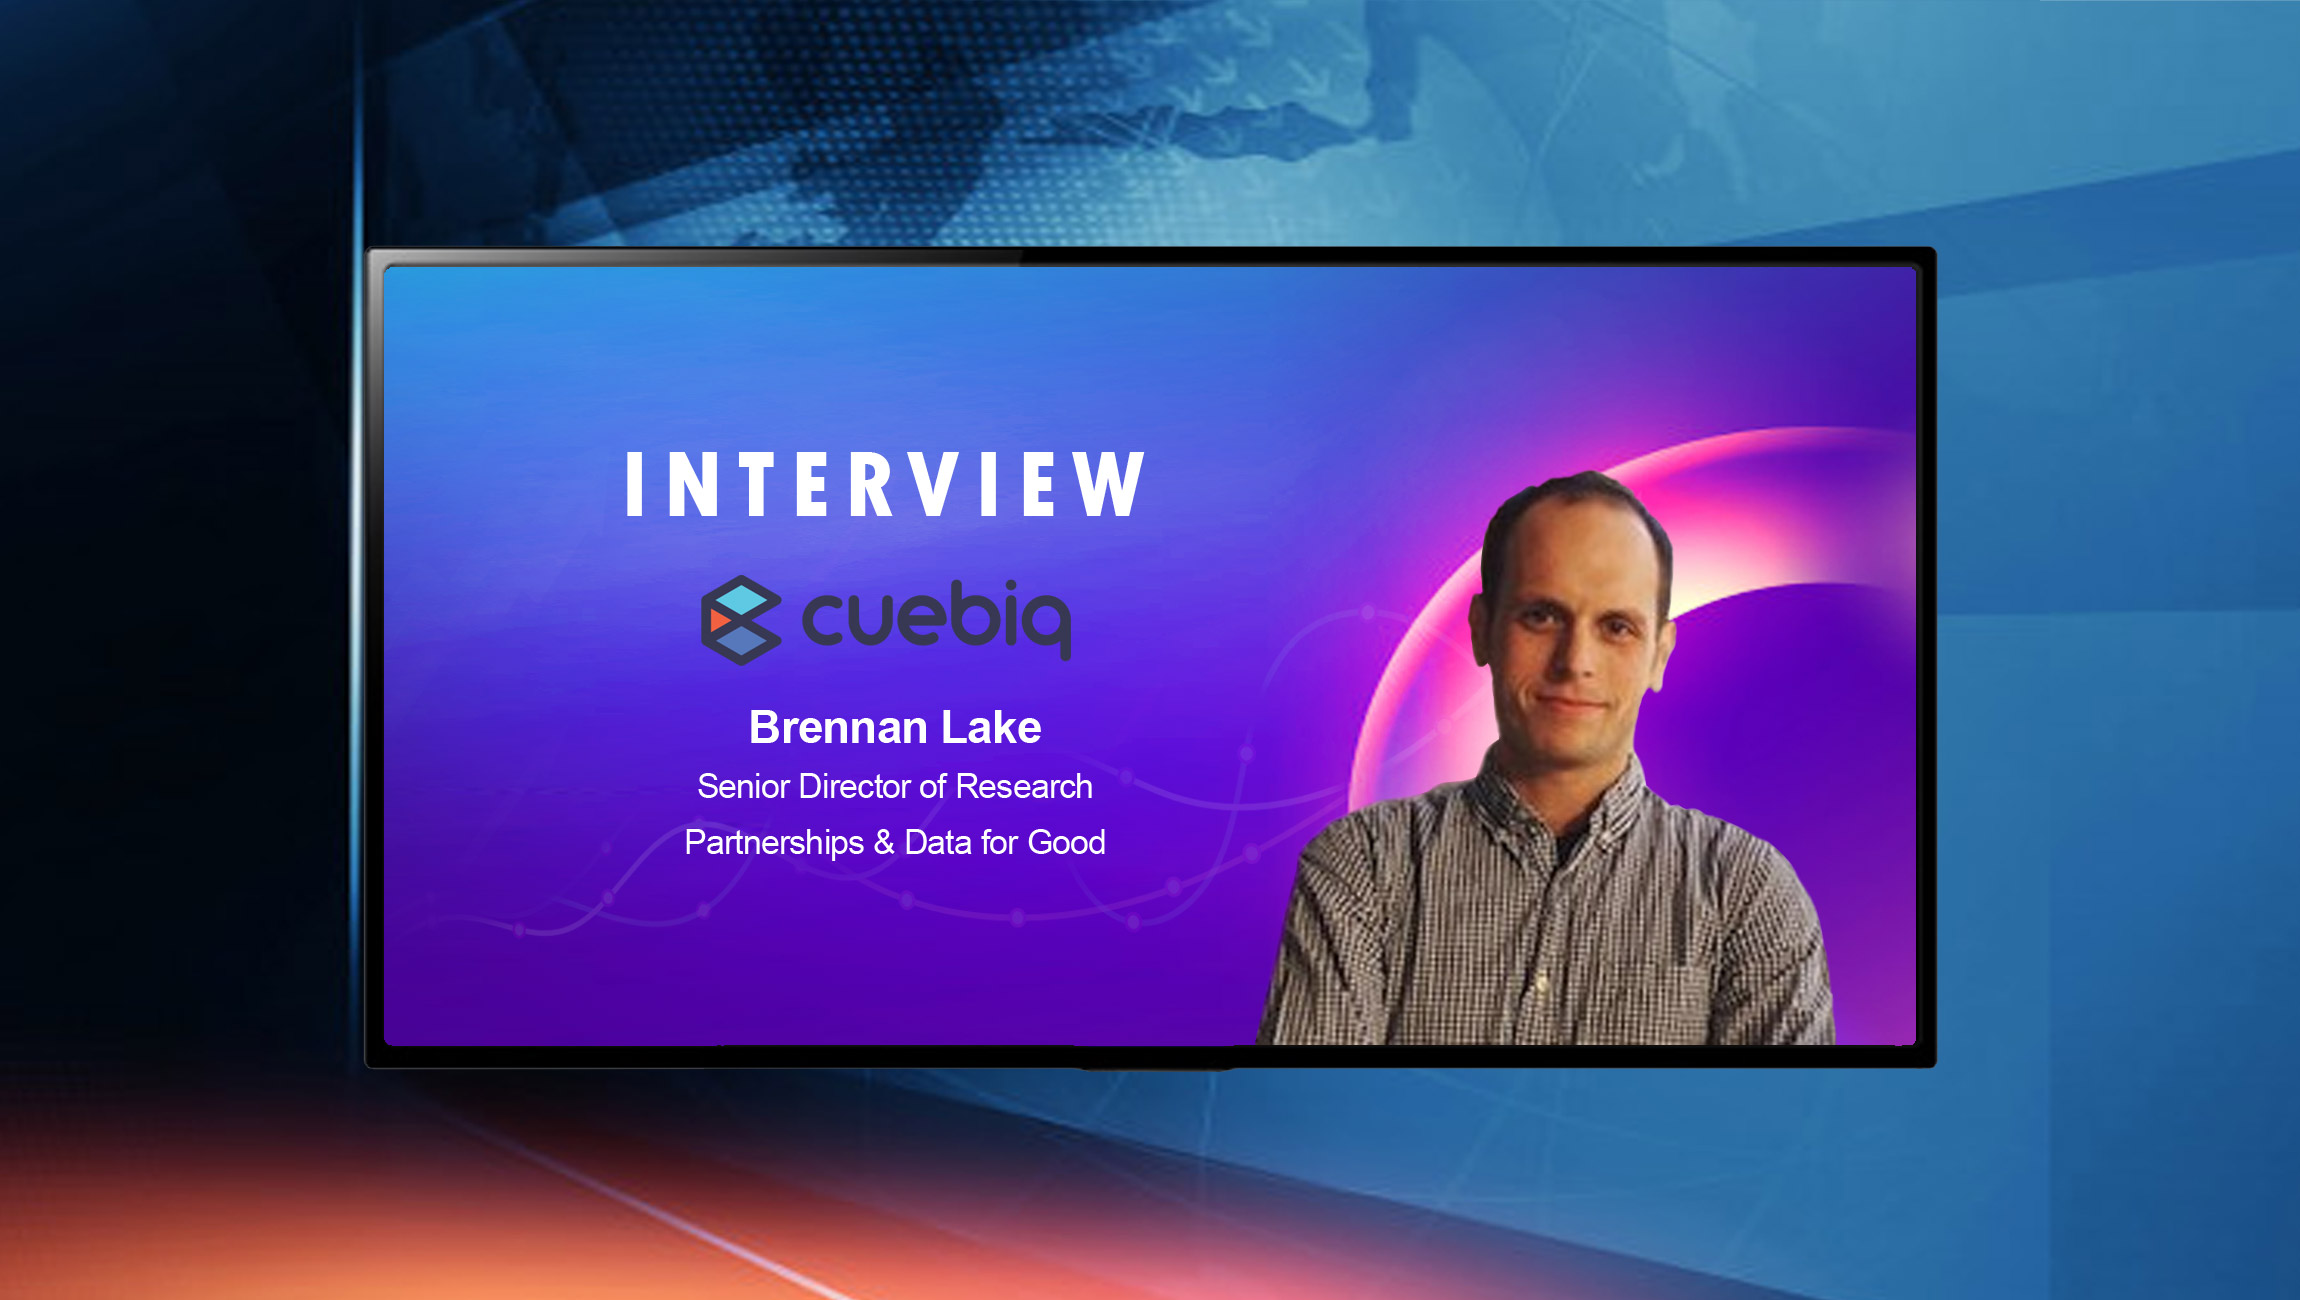 SalesTechStar Interview with Brennan Lake, Senior Director of Research Partnerships & Data for Good at Cuebiq